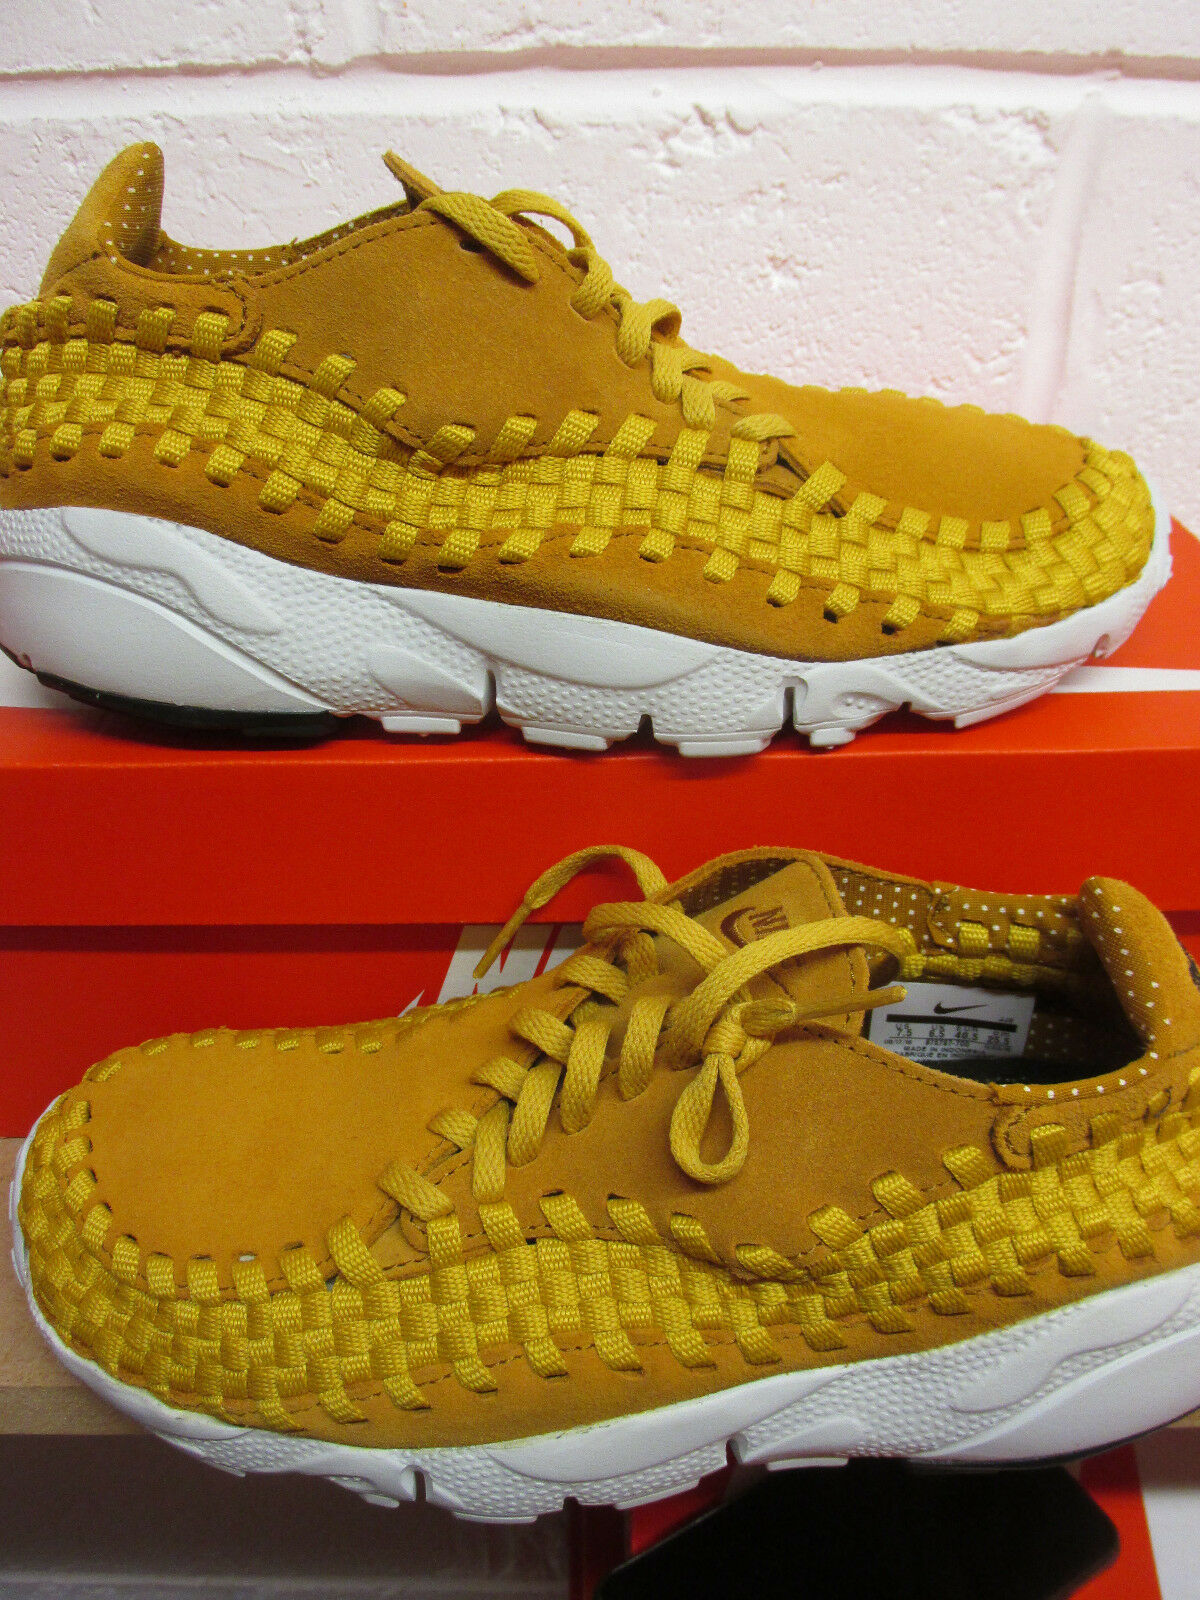 Nike Air Footscape Woven NM Mens Running Trainers 875797 700 Sneakers Shoes best-selling model of the brand